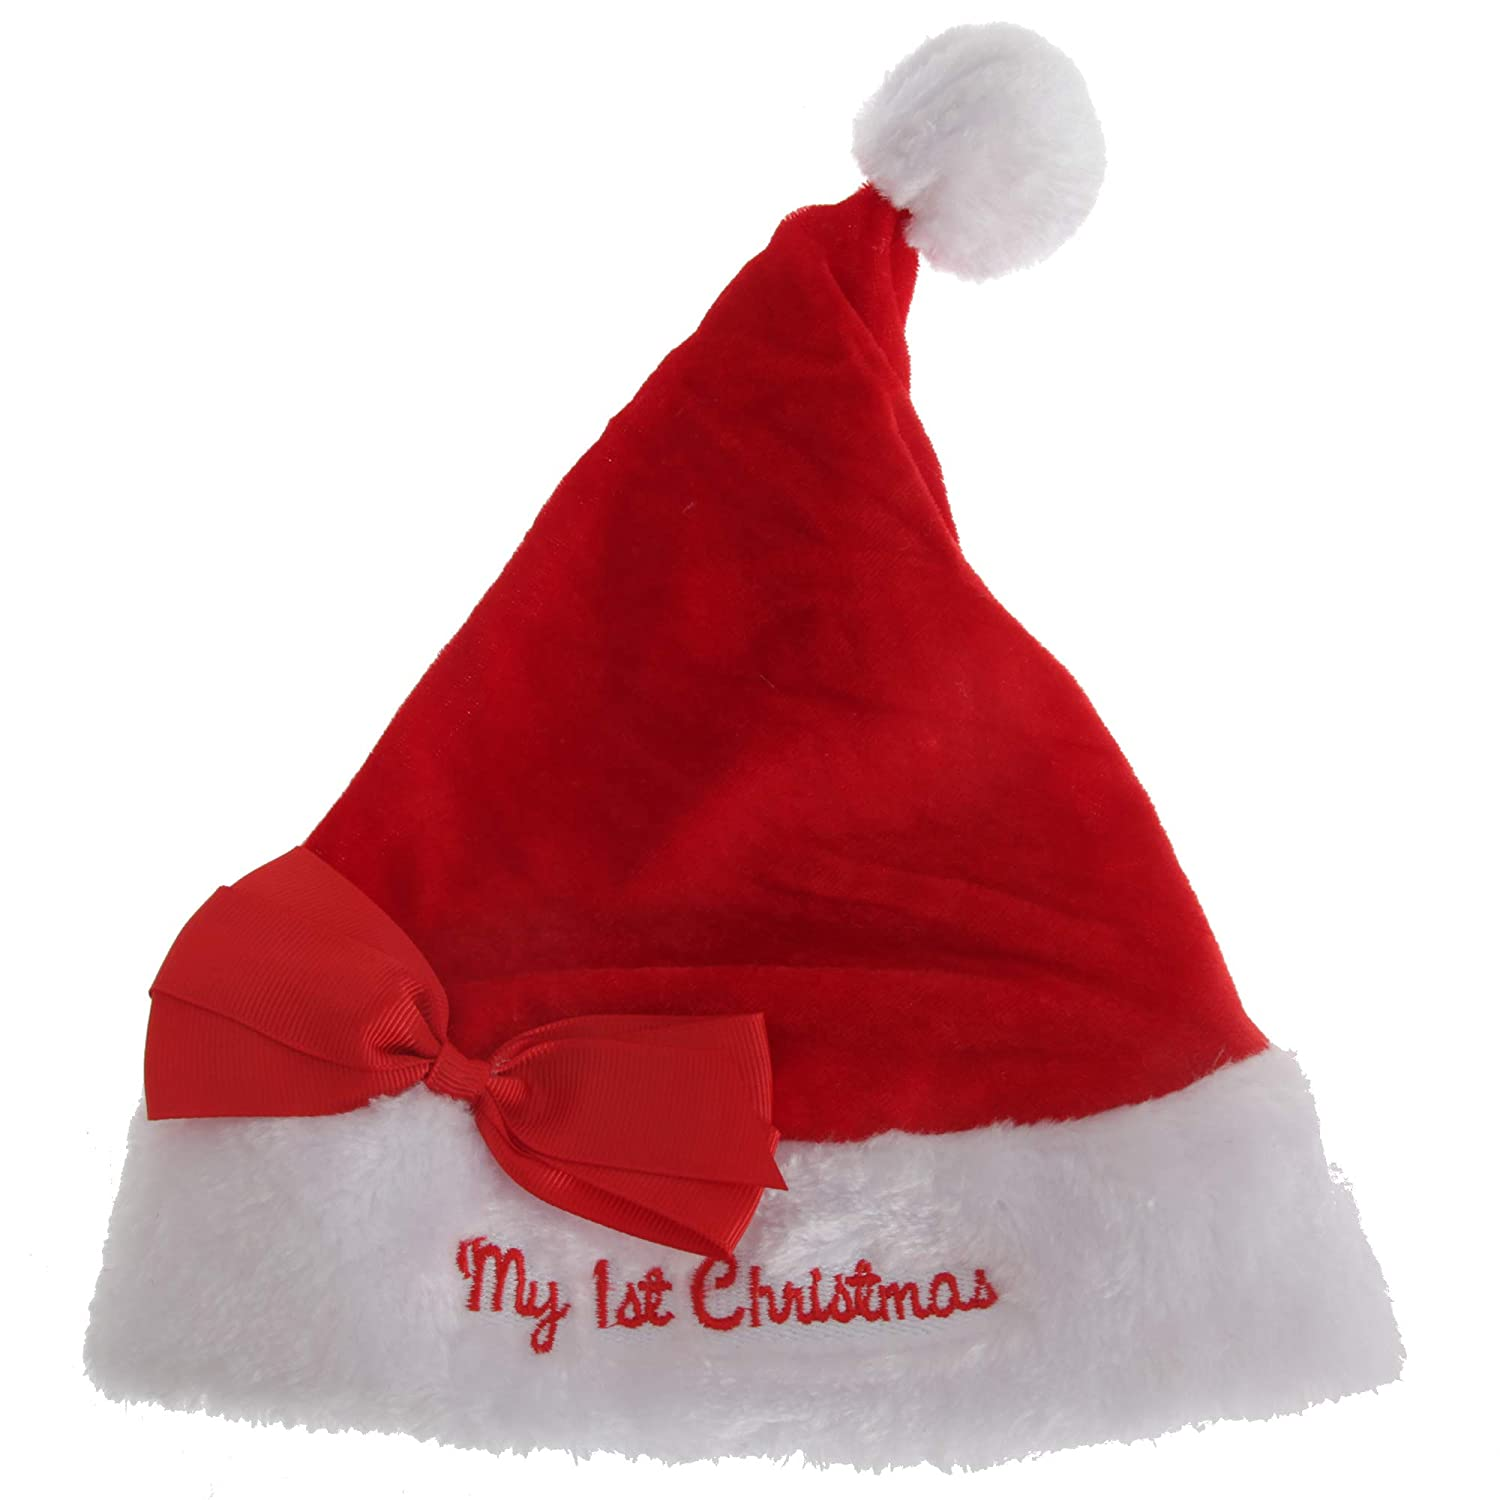 Nursery Time Baby Boys/Girls My First Christmas Santa Hat with Bow (One Size) (Red/White) UTXM114_1